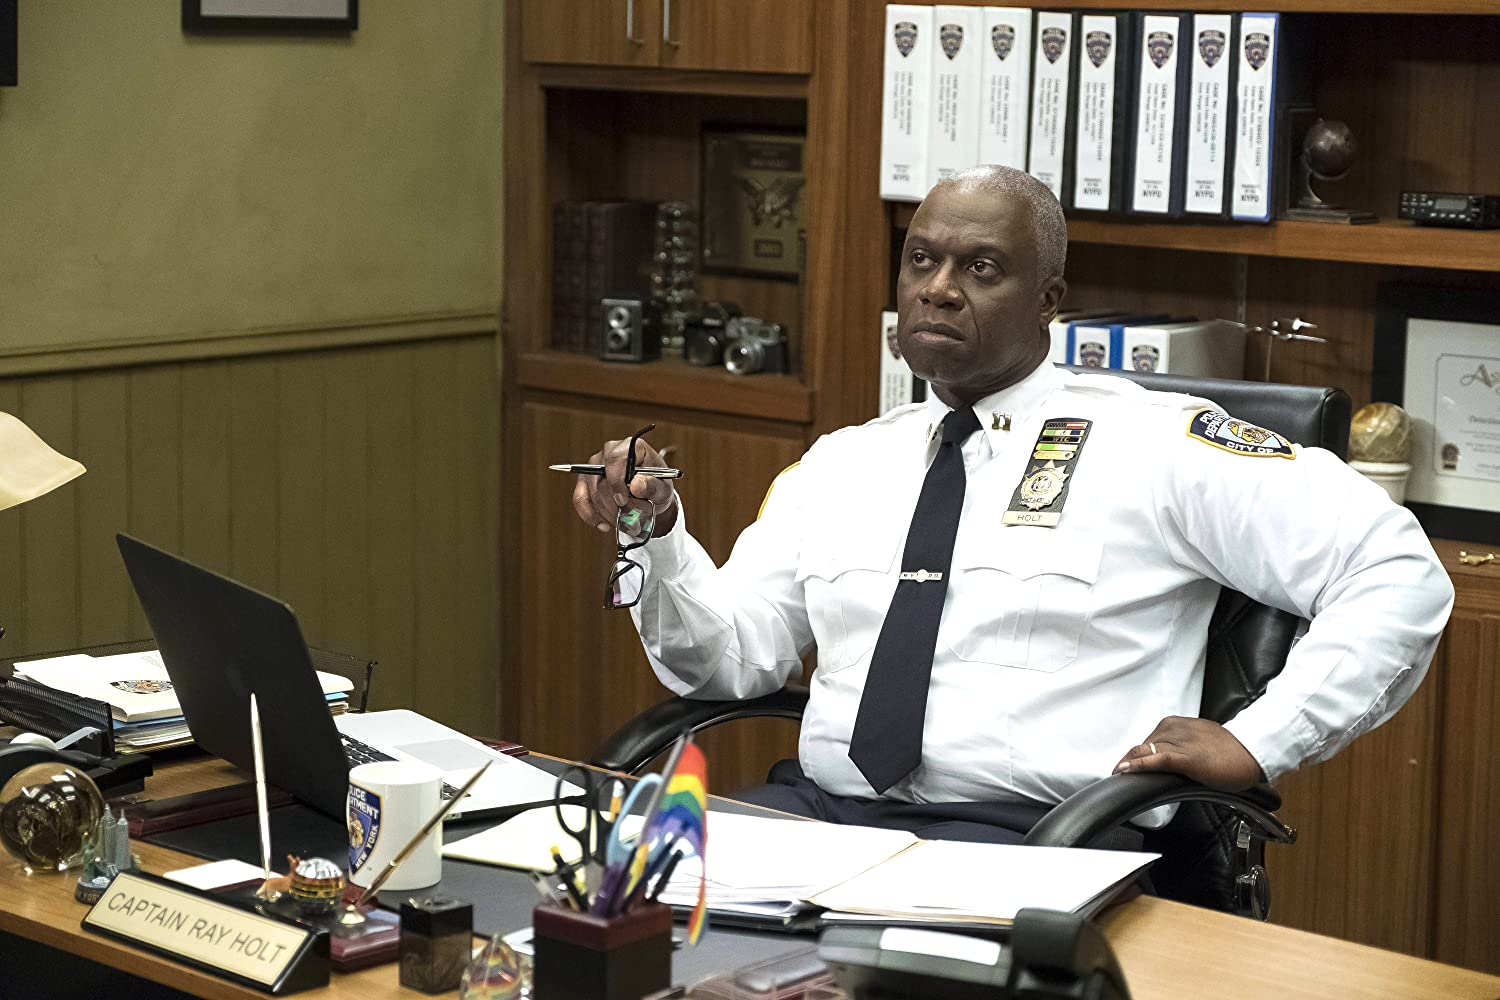 Andre Braugher in Brooklyn Nine-Nine (2013)